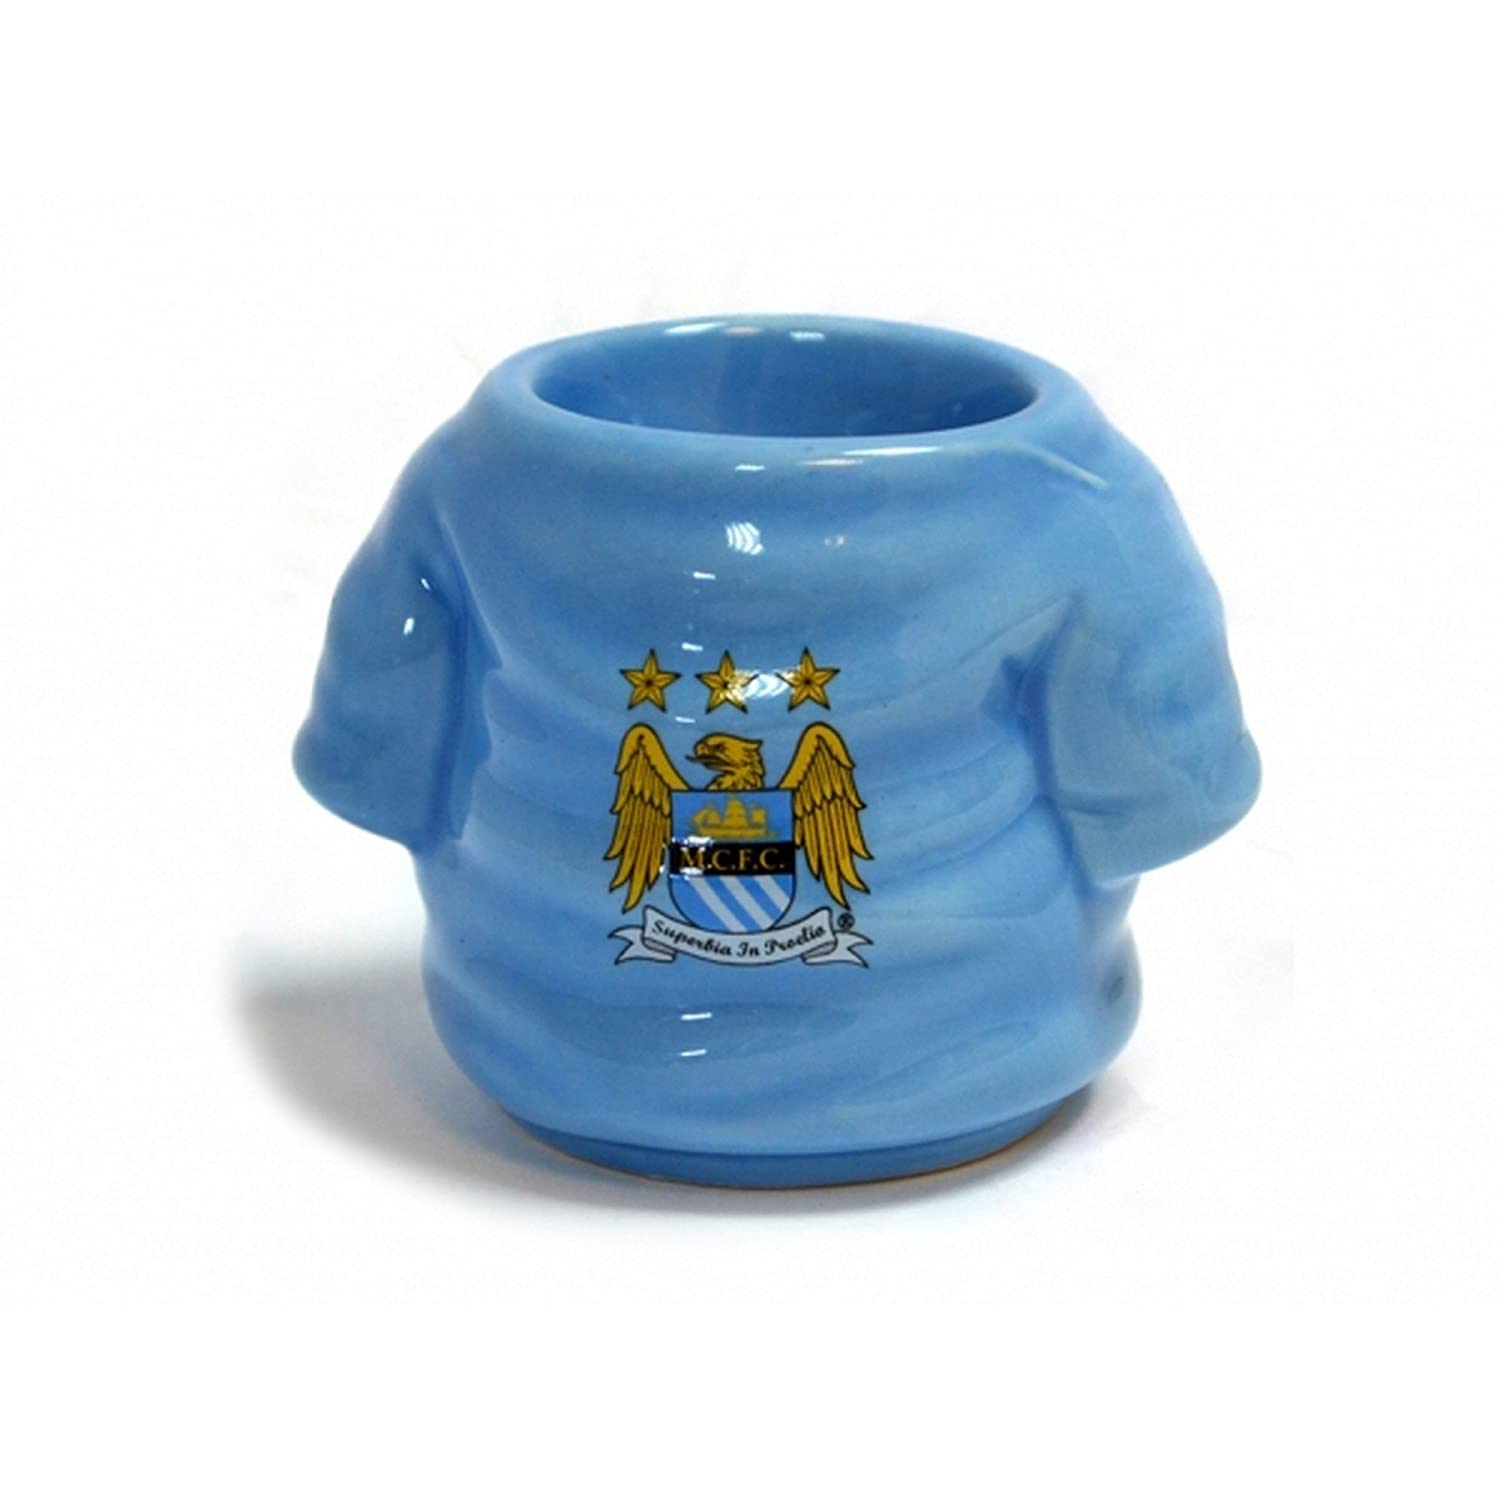 Manchester City FC Official Football Shirt Egg Cup (One Size) (Light Blue/Gold) UTBS233_1